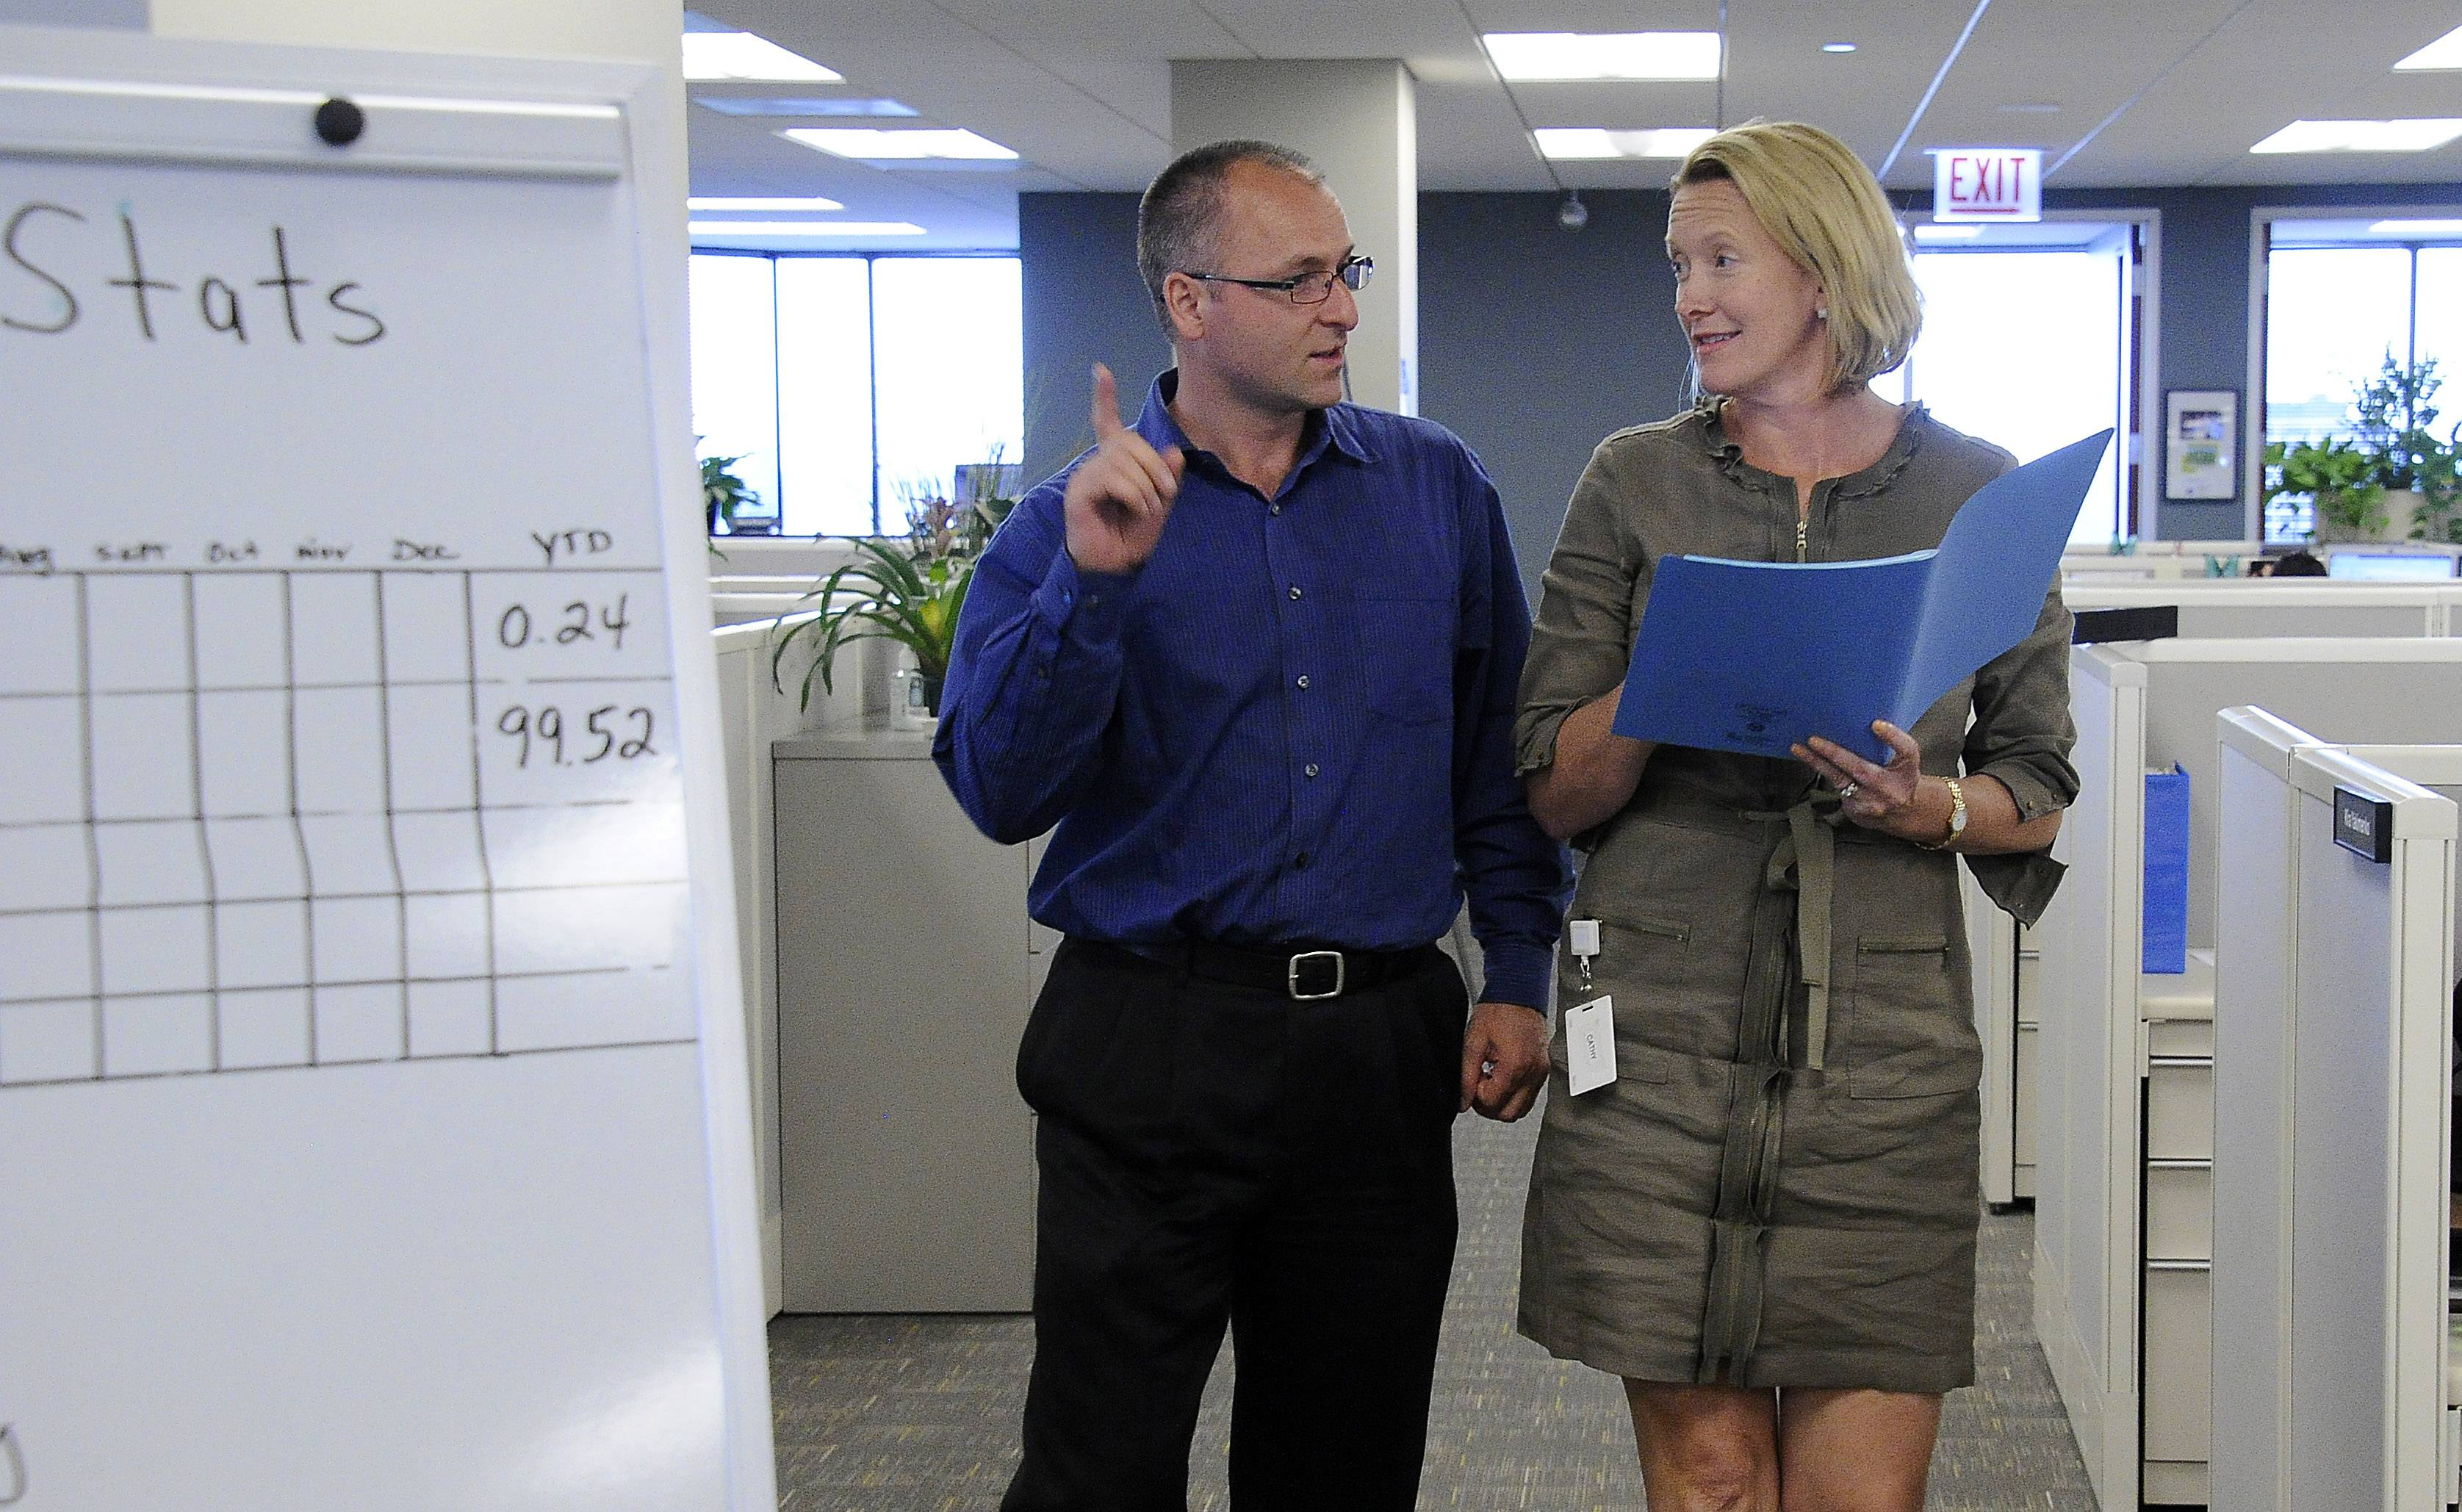 Cathy Kenworthy, president and CEO of Interactive Health, discusses the day events with Joe Szecsi, controller in their offices in Schaumburg.